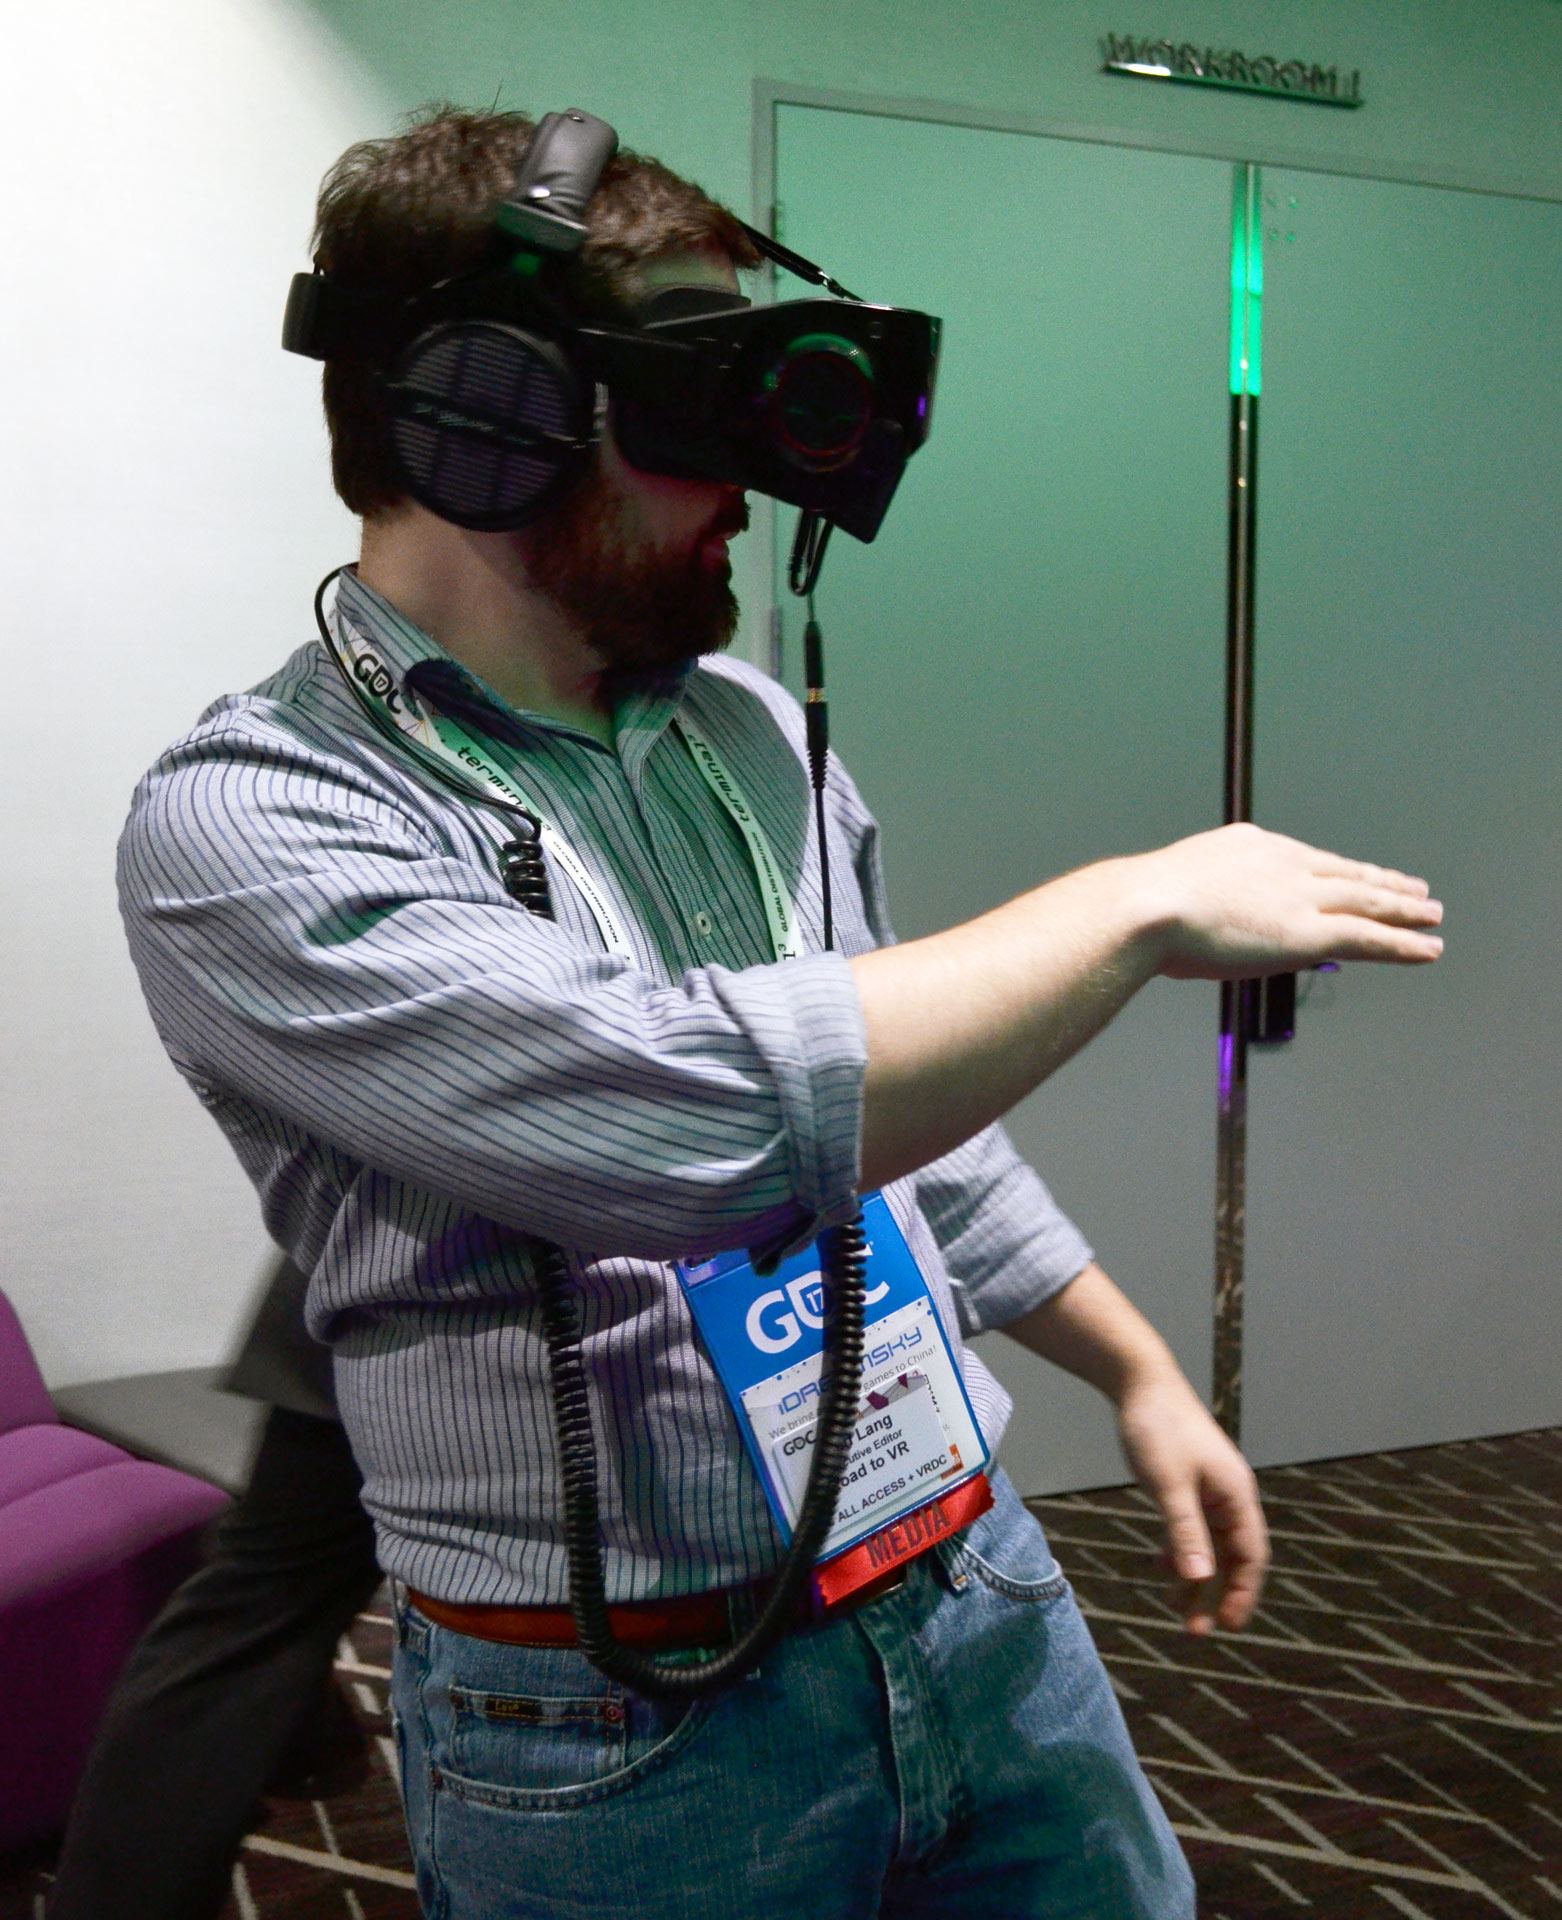 Leap Motion's Mobile Hand-tracking Comes to Qualcomm's